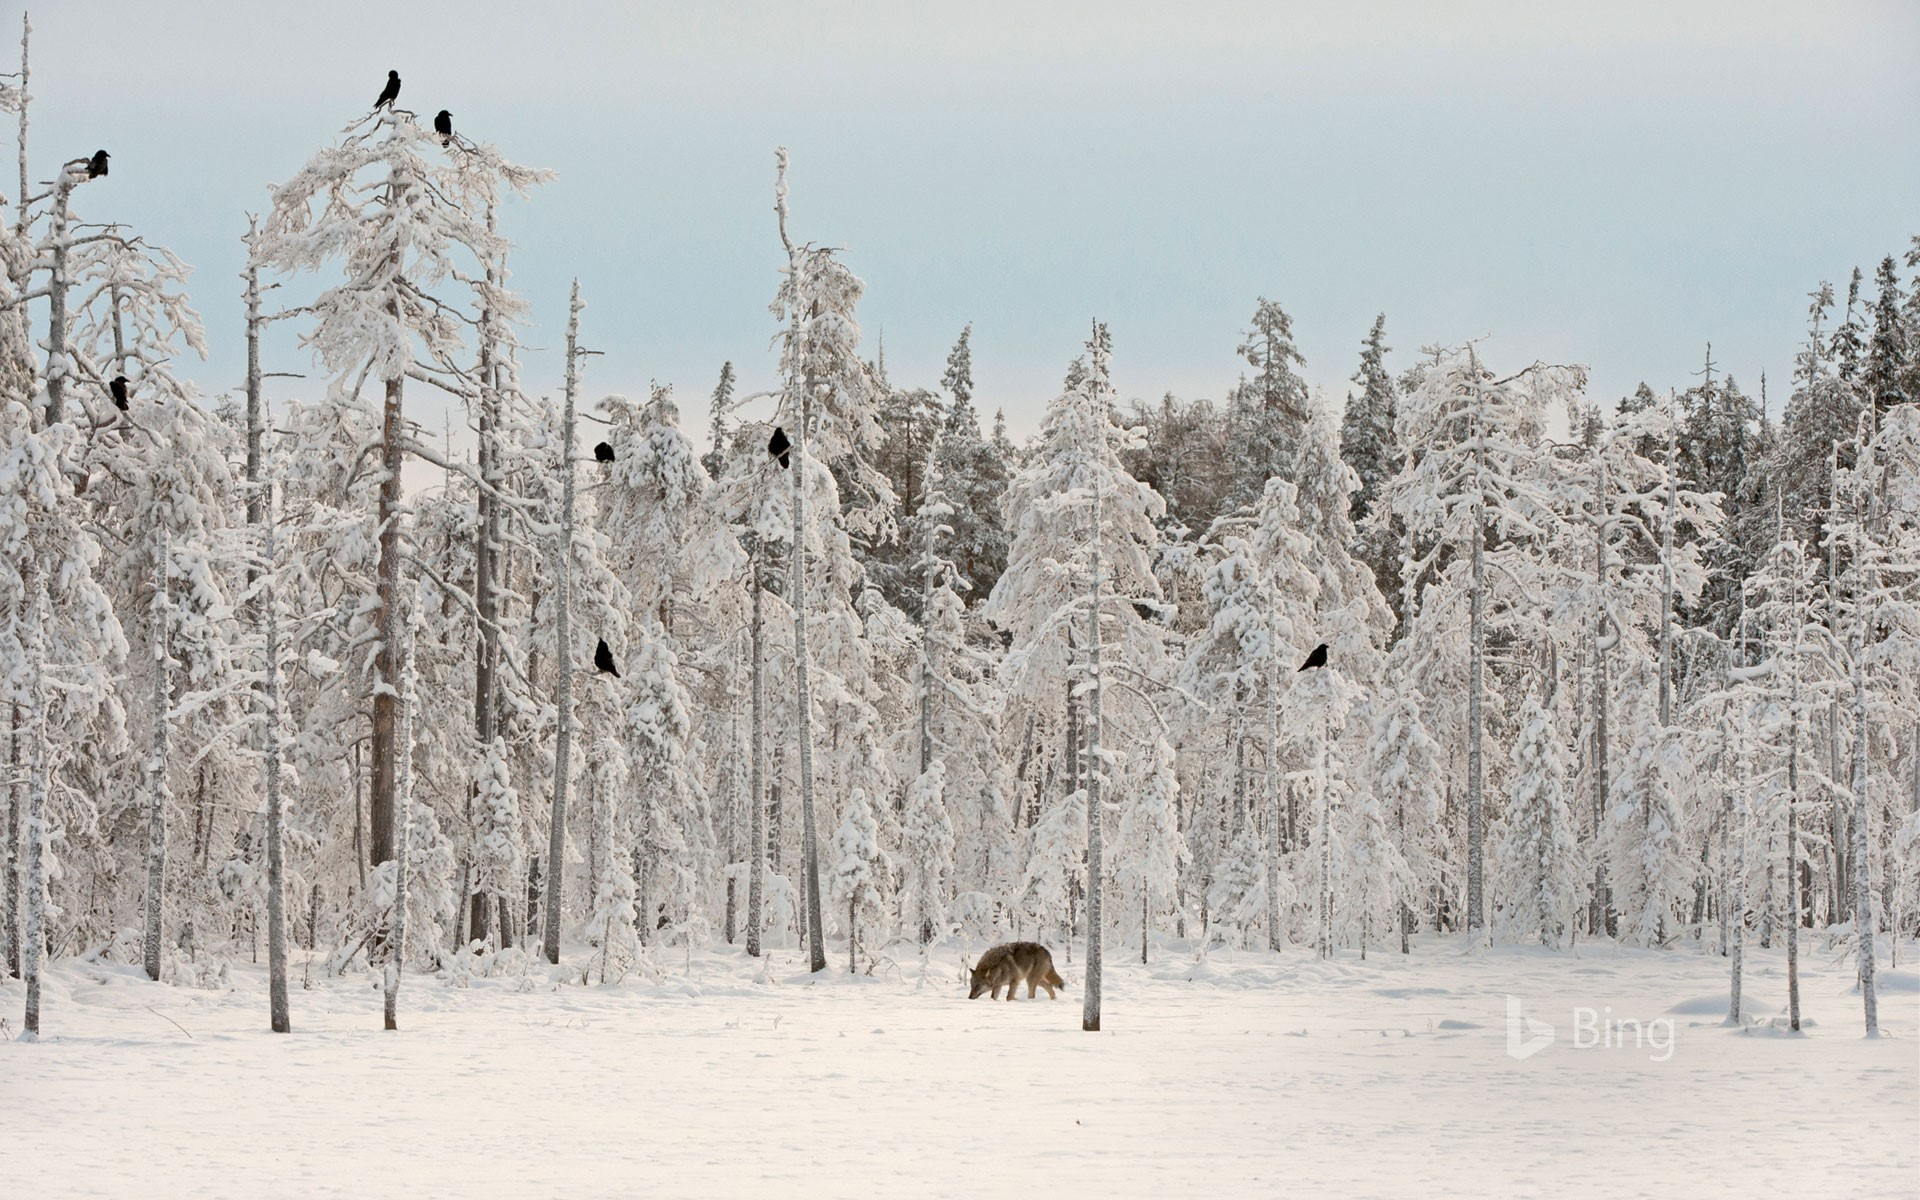 Grey wolf with flock of ravens in Finland